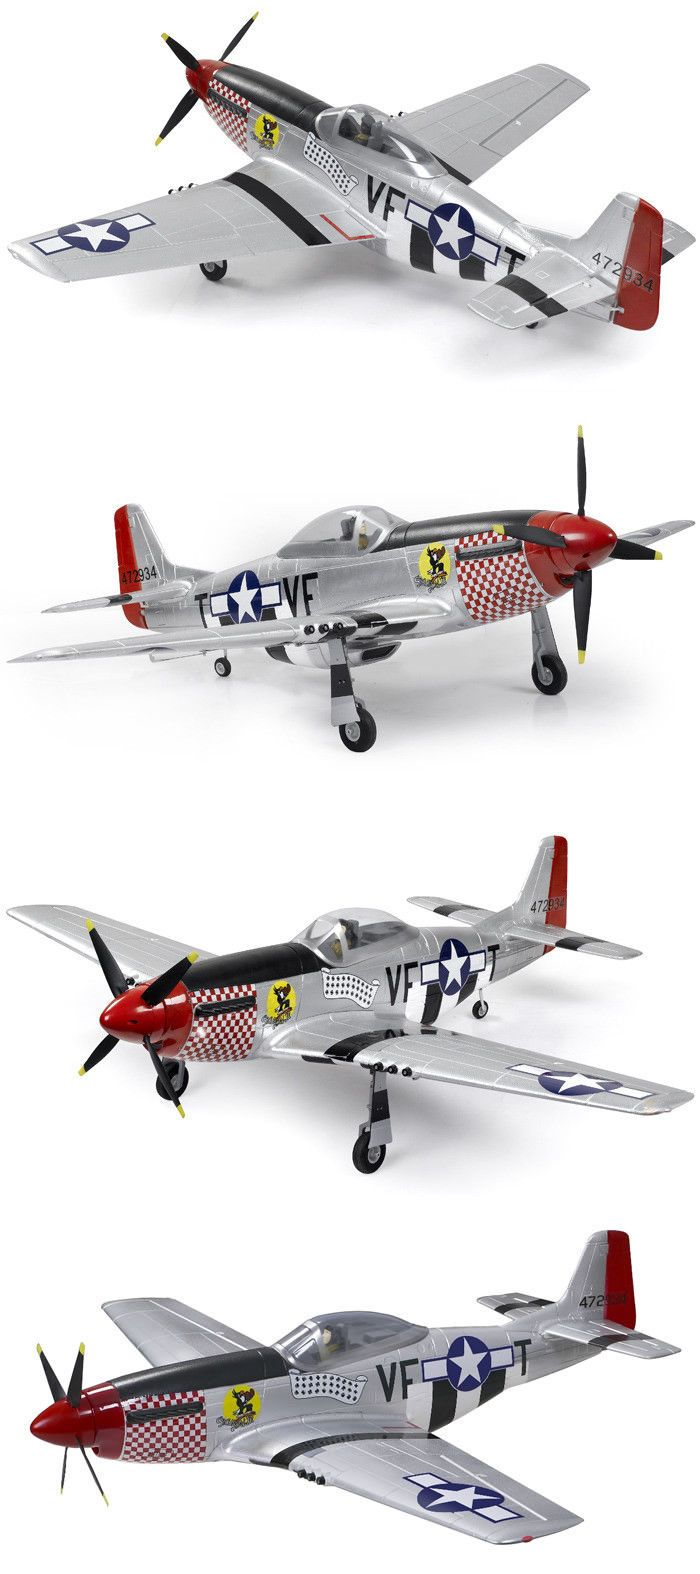 Airplanes 182182: Airfield P51 1450Mm 5Ch Warbird Brushless Rc Plane